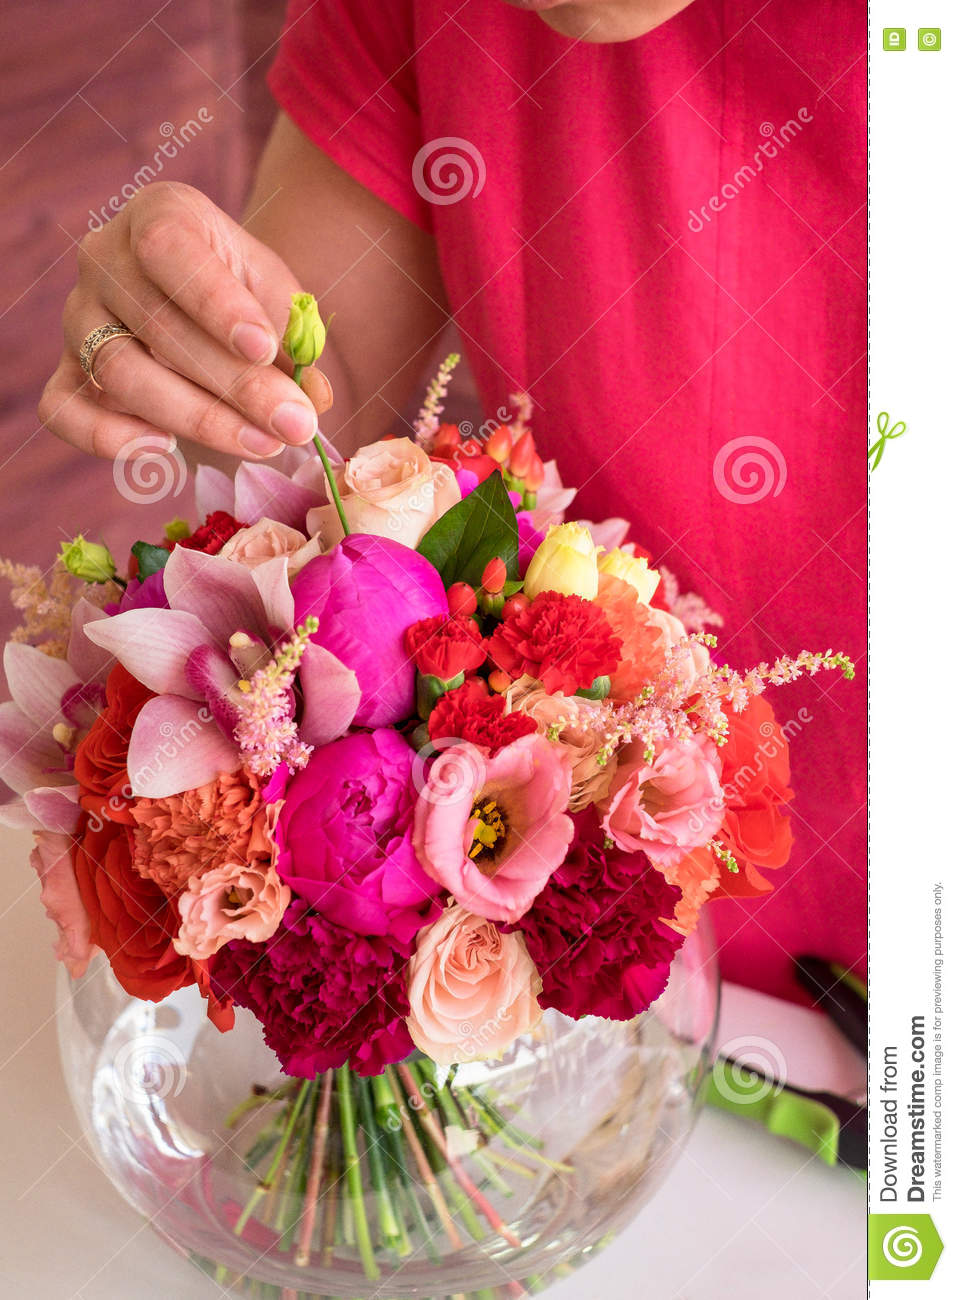 Girl Florist Making A Wedding Bouquet Stock Photo - Image of ...